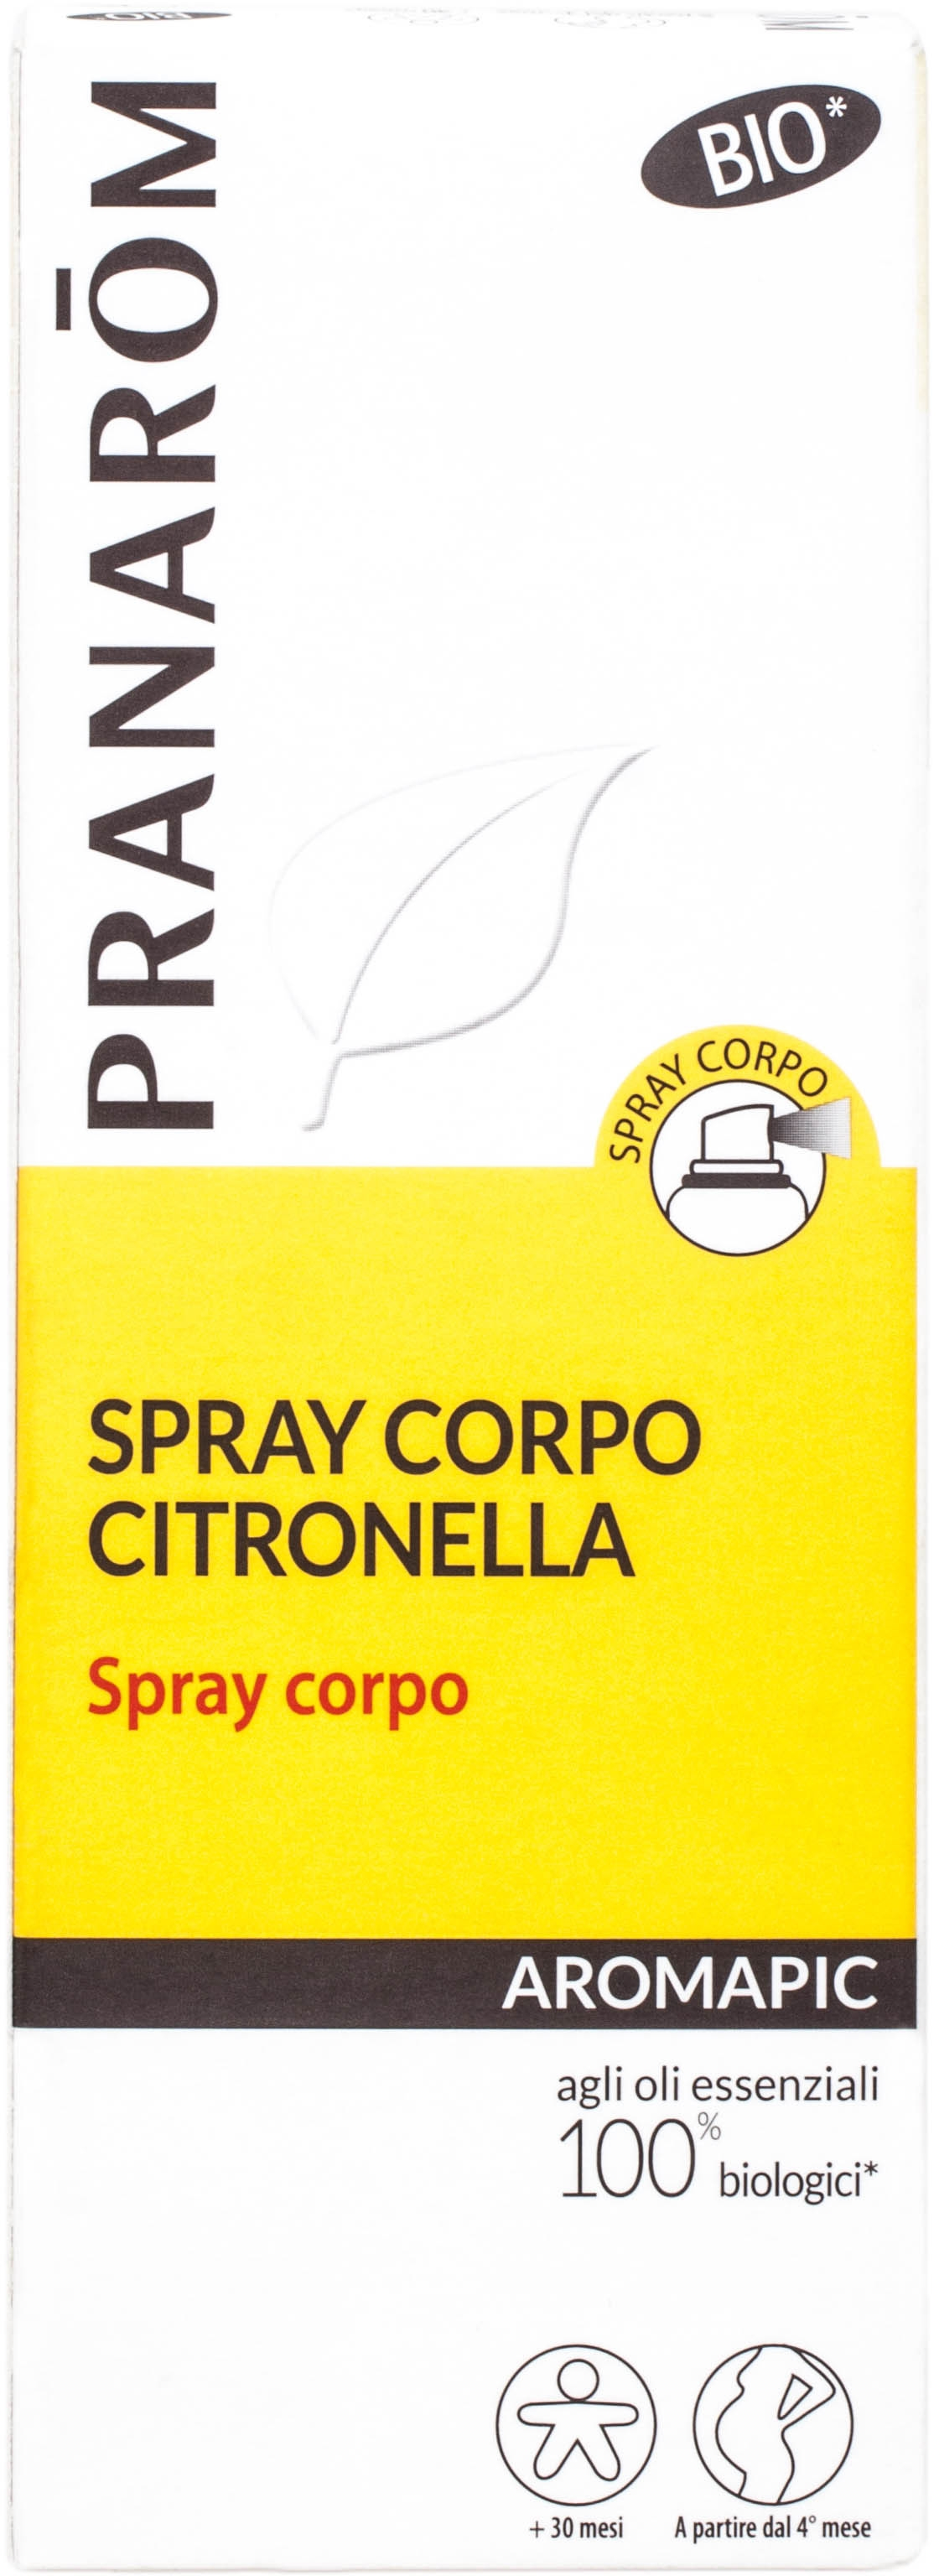 Spray corpo citronella